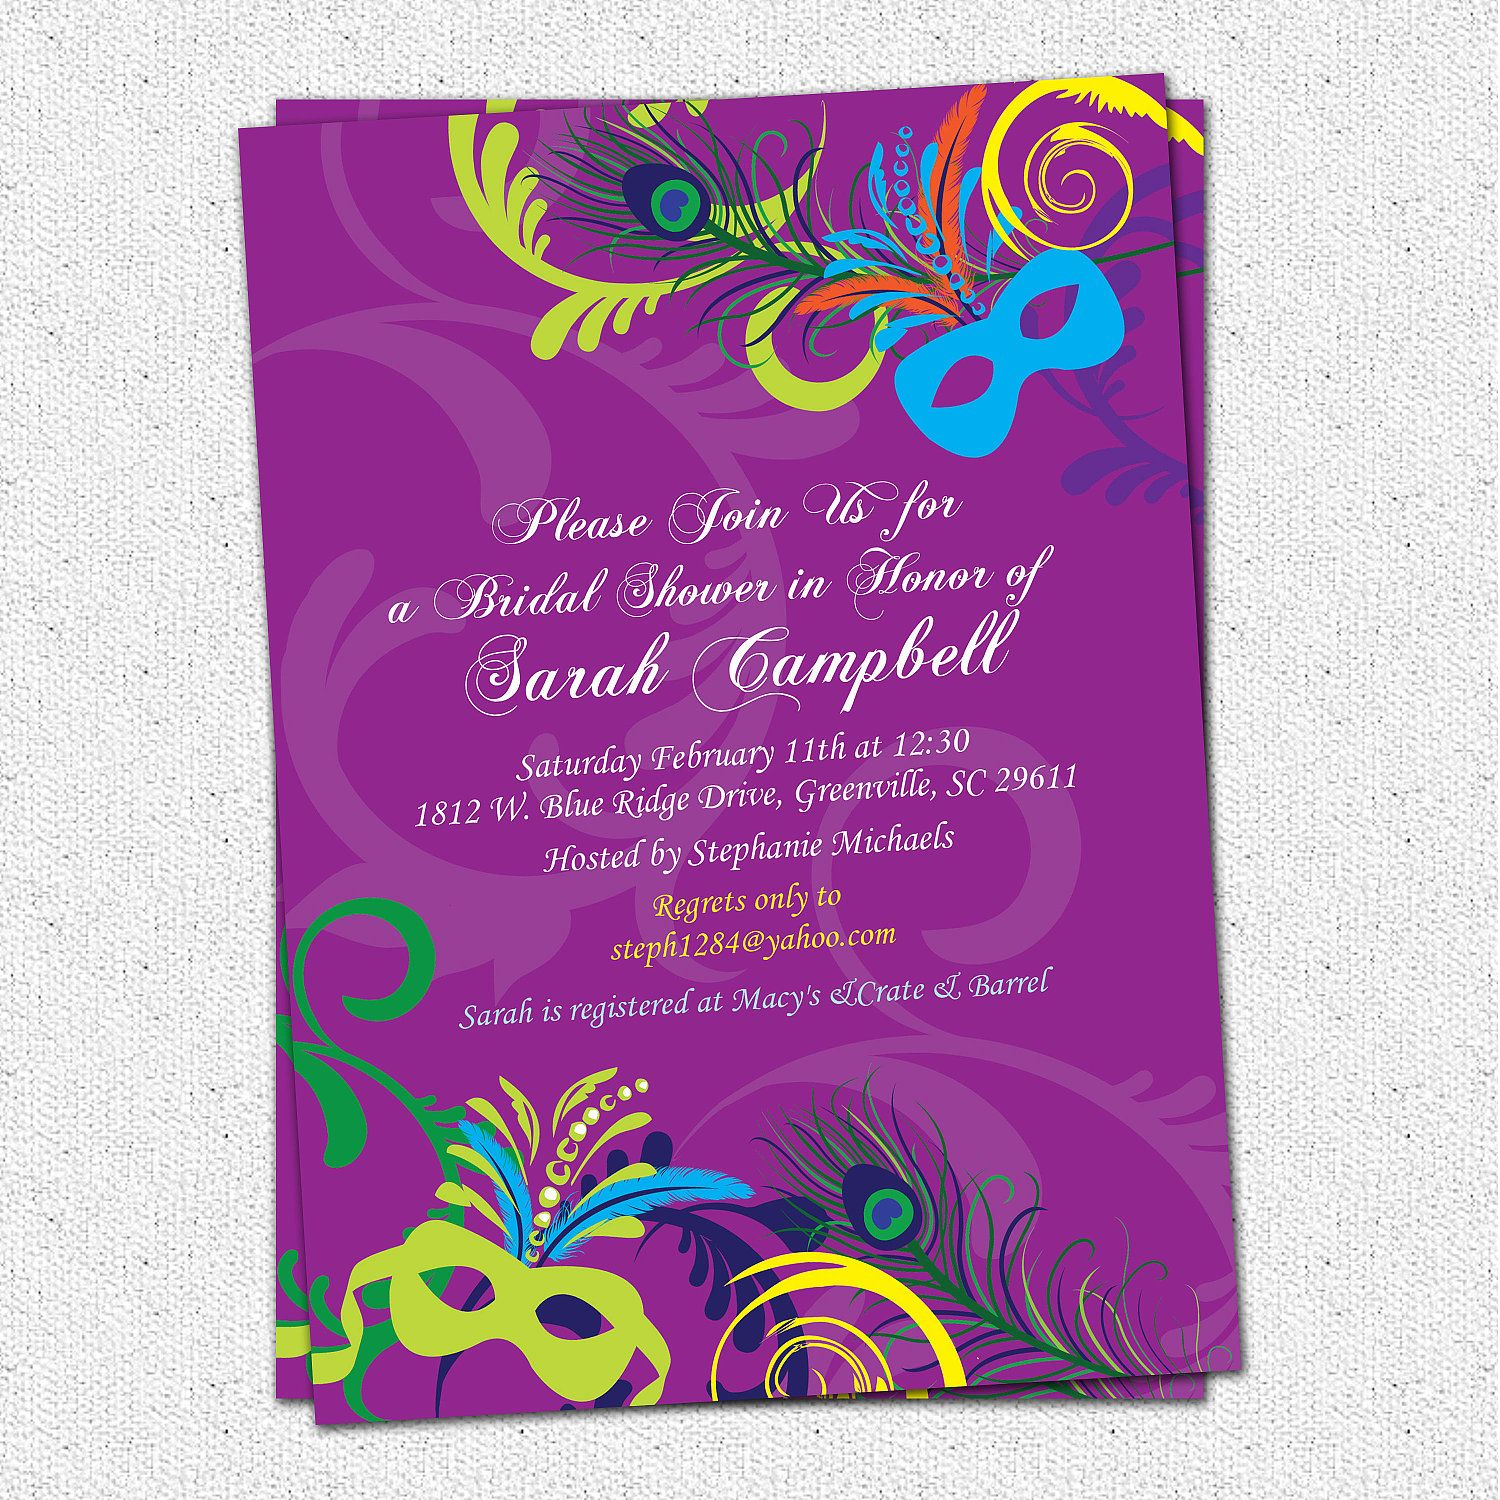 Bridal Shower Invitation Printable Mardigras By Ohcreativeone